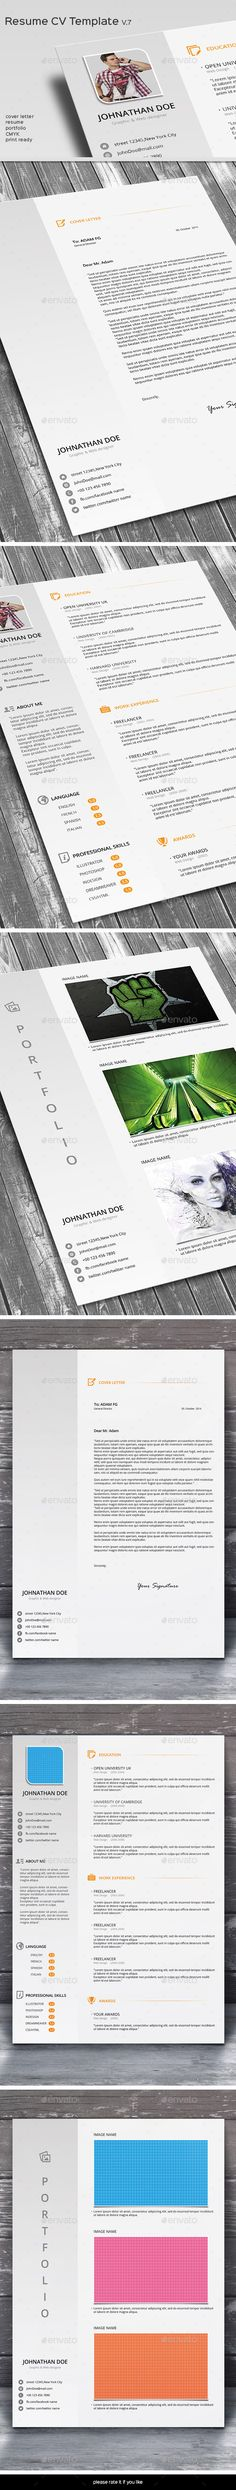 Simple CV / Resume Template \u2014 Photoshop PSD #short cv #blue